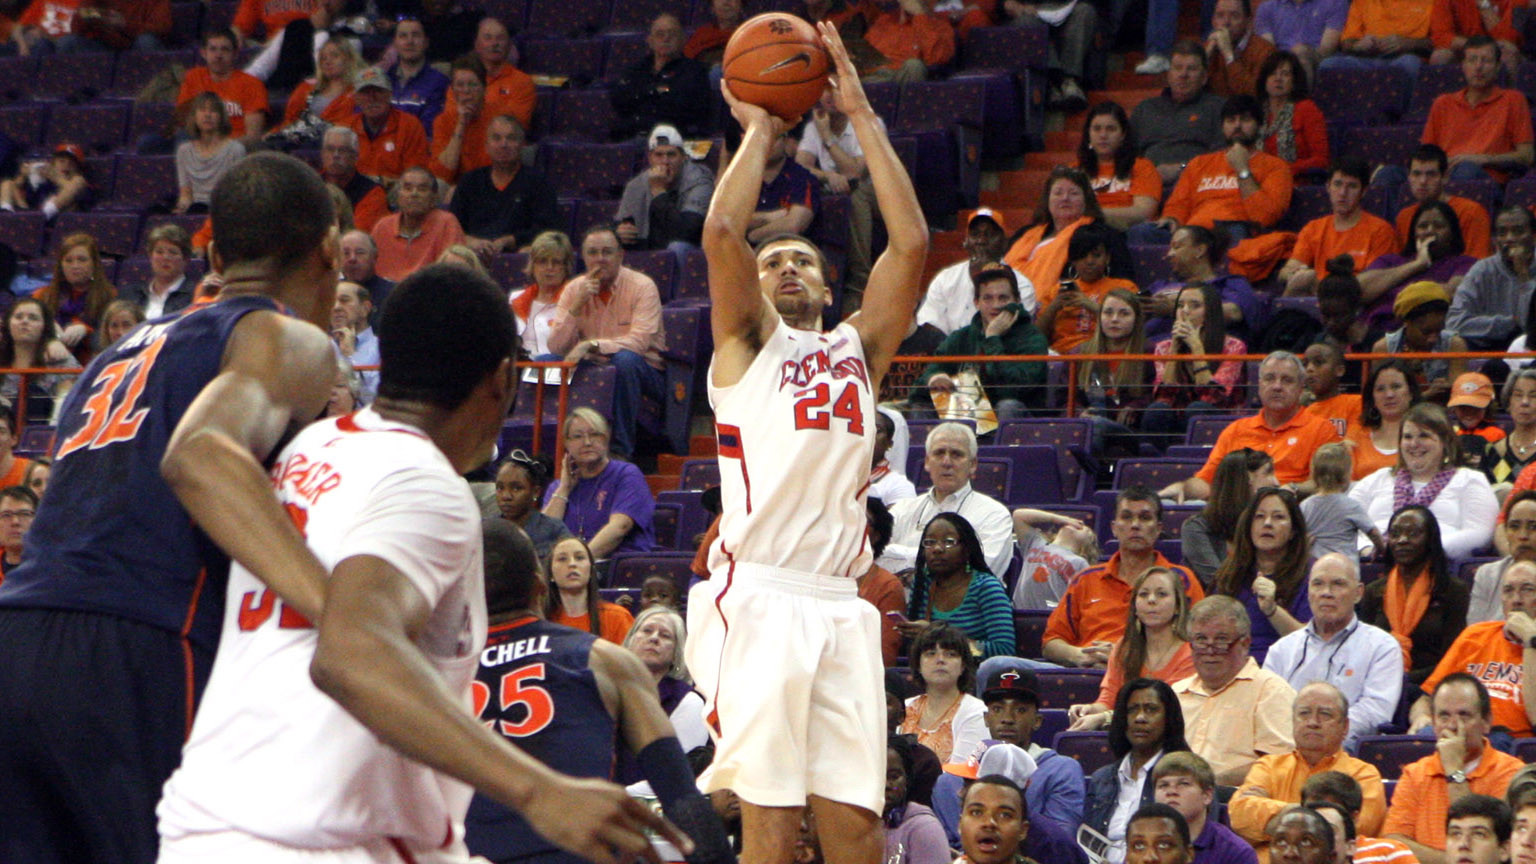 Seniors Lead Clemson to First ACC Victory, 59-44 over Virginia